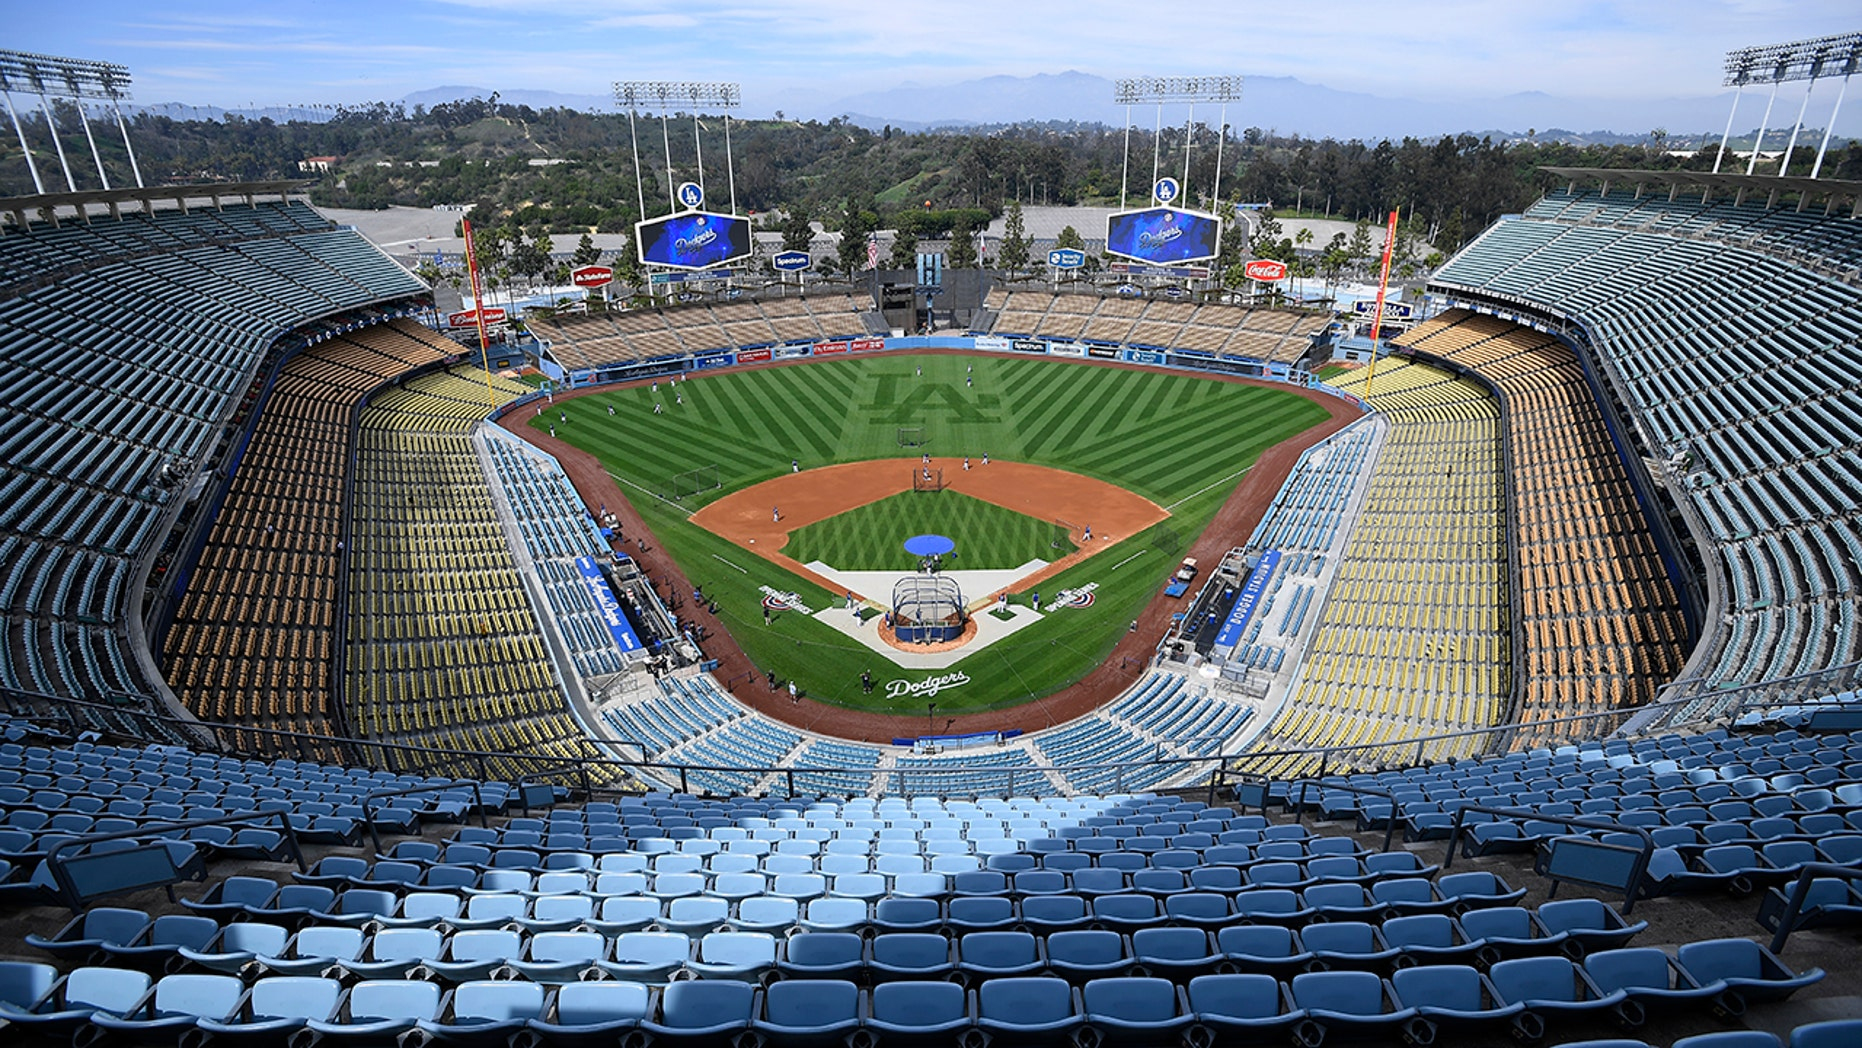 Woman killed by foul ball at Dodgers game in August